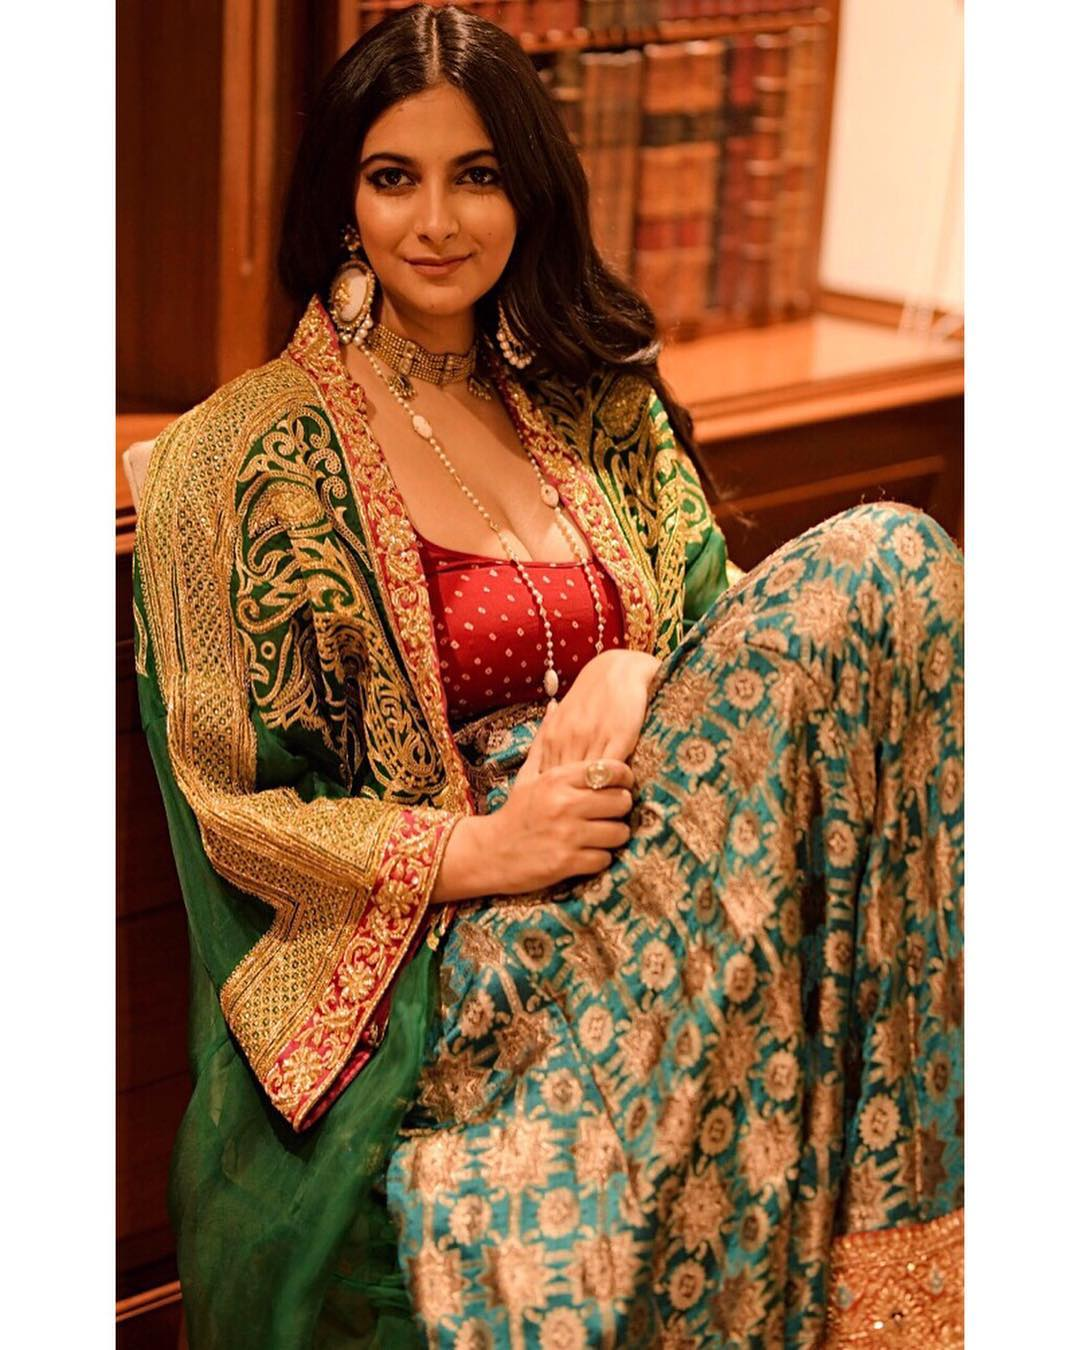 isabelle kaif, wedding trousseau, wedding outfits ideas, lehenga choli, banarasi blouse ideas, banarasi choli, choli design ideas